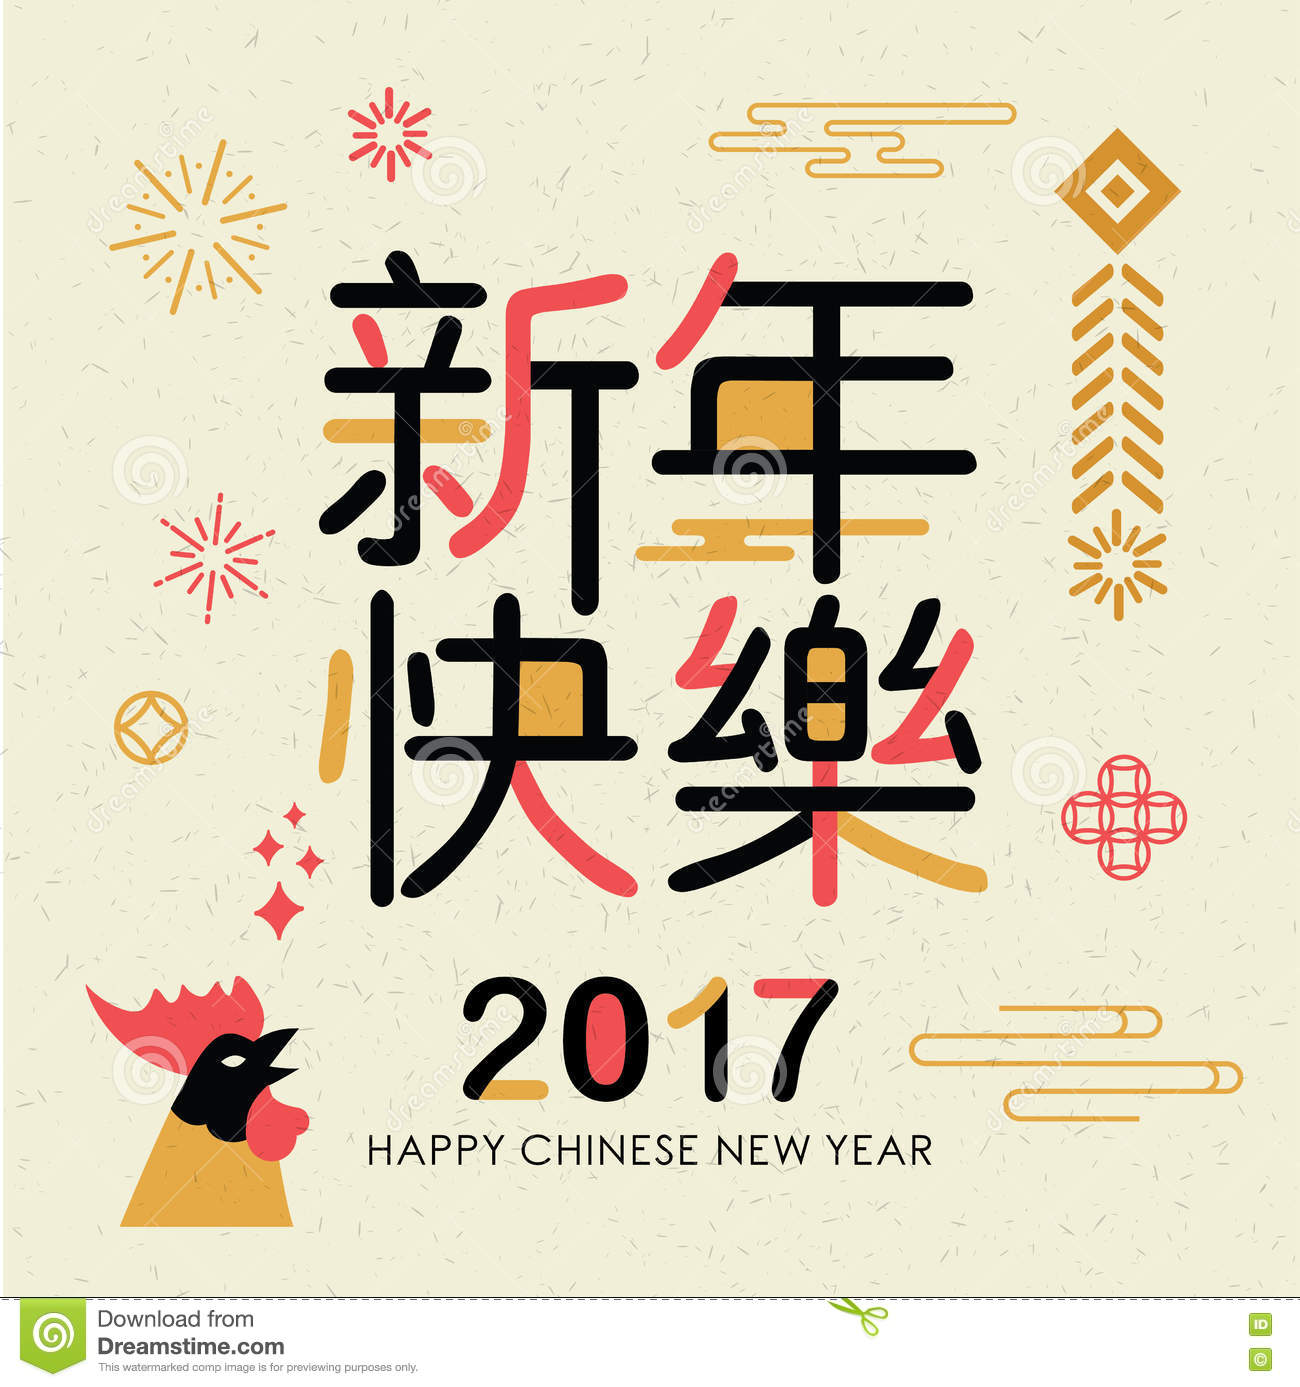 Happy chinese new year 2017 stock vector illustration of happy chinese new year 2017 prosperity festival m4hsunfo